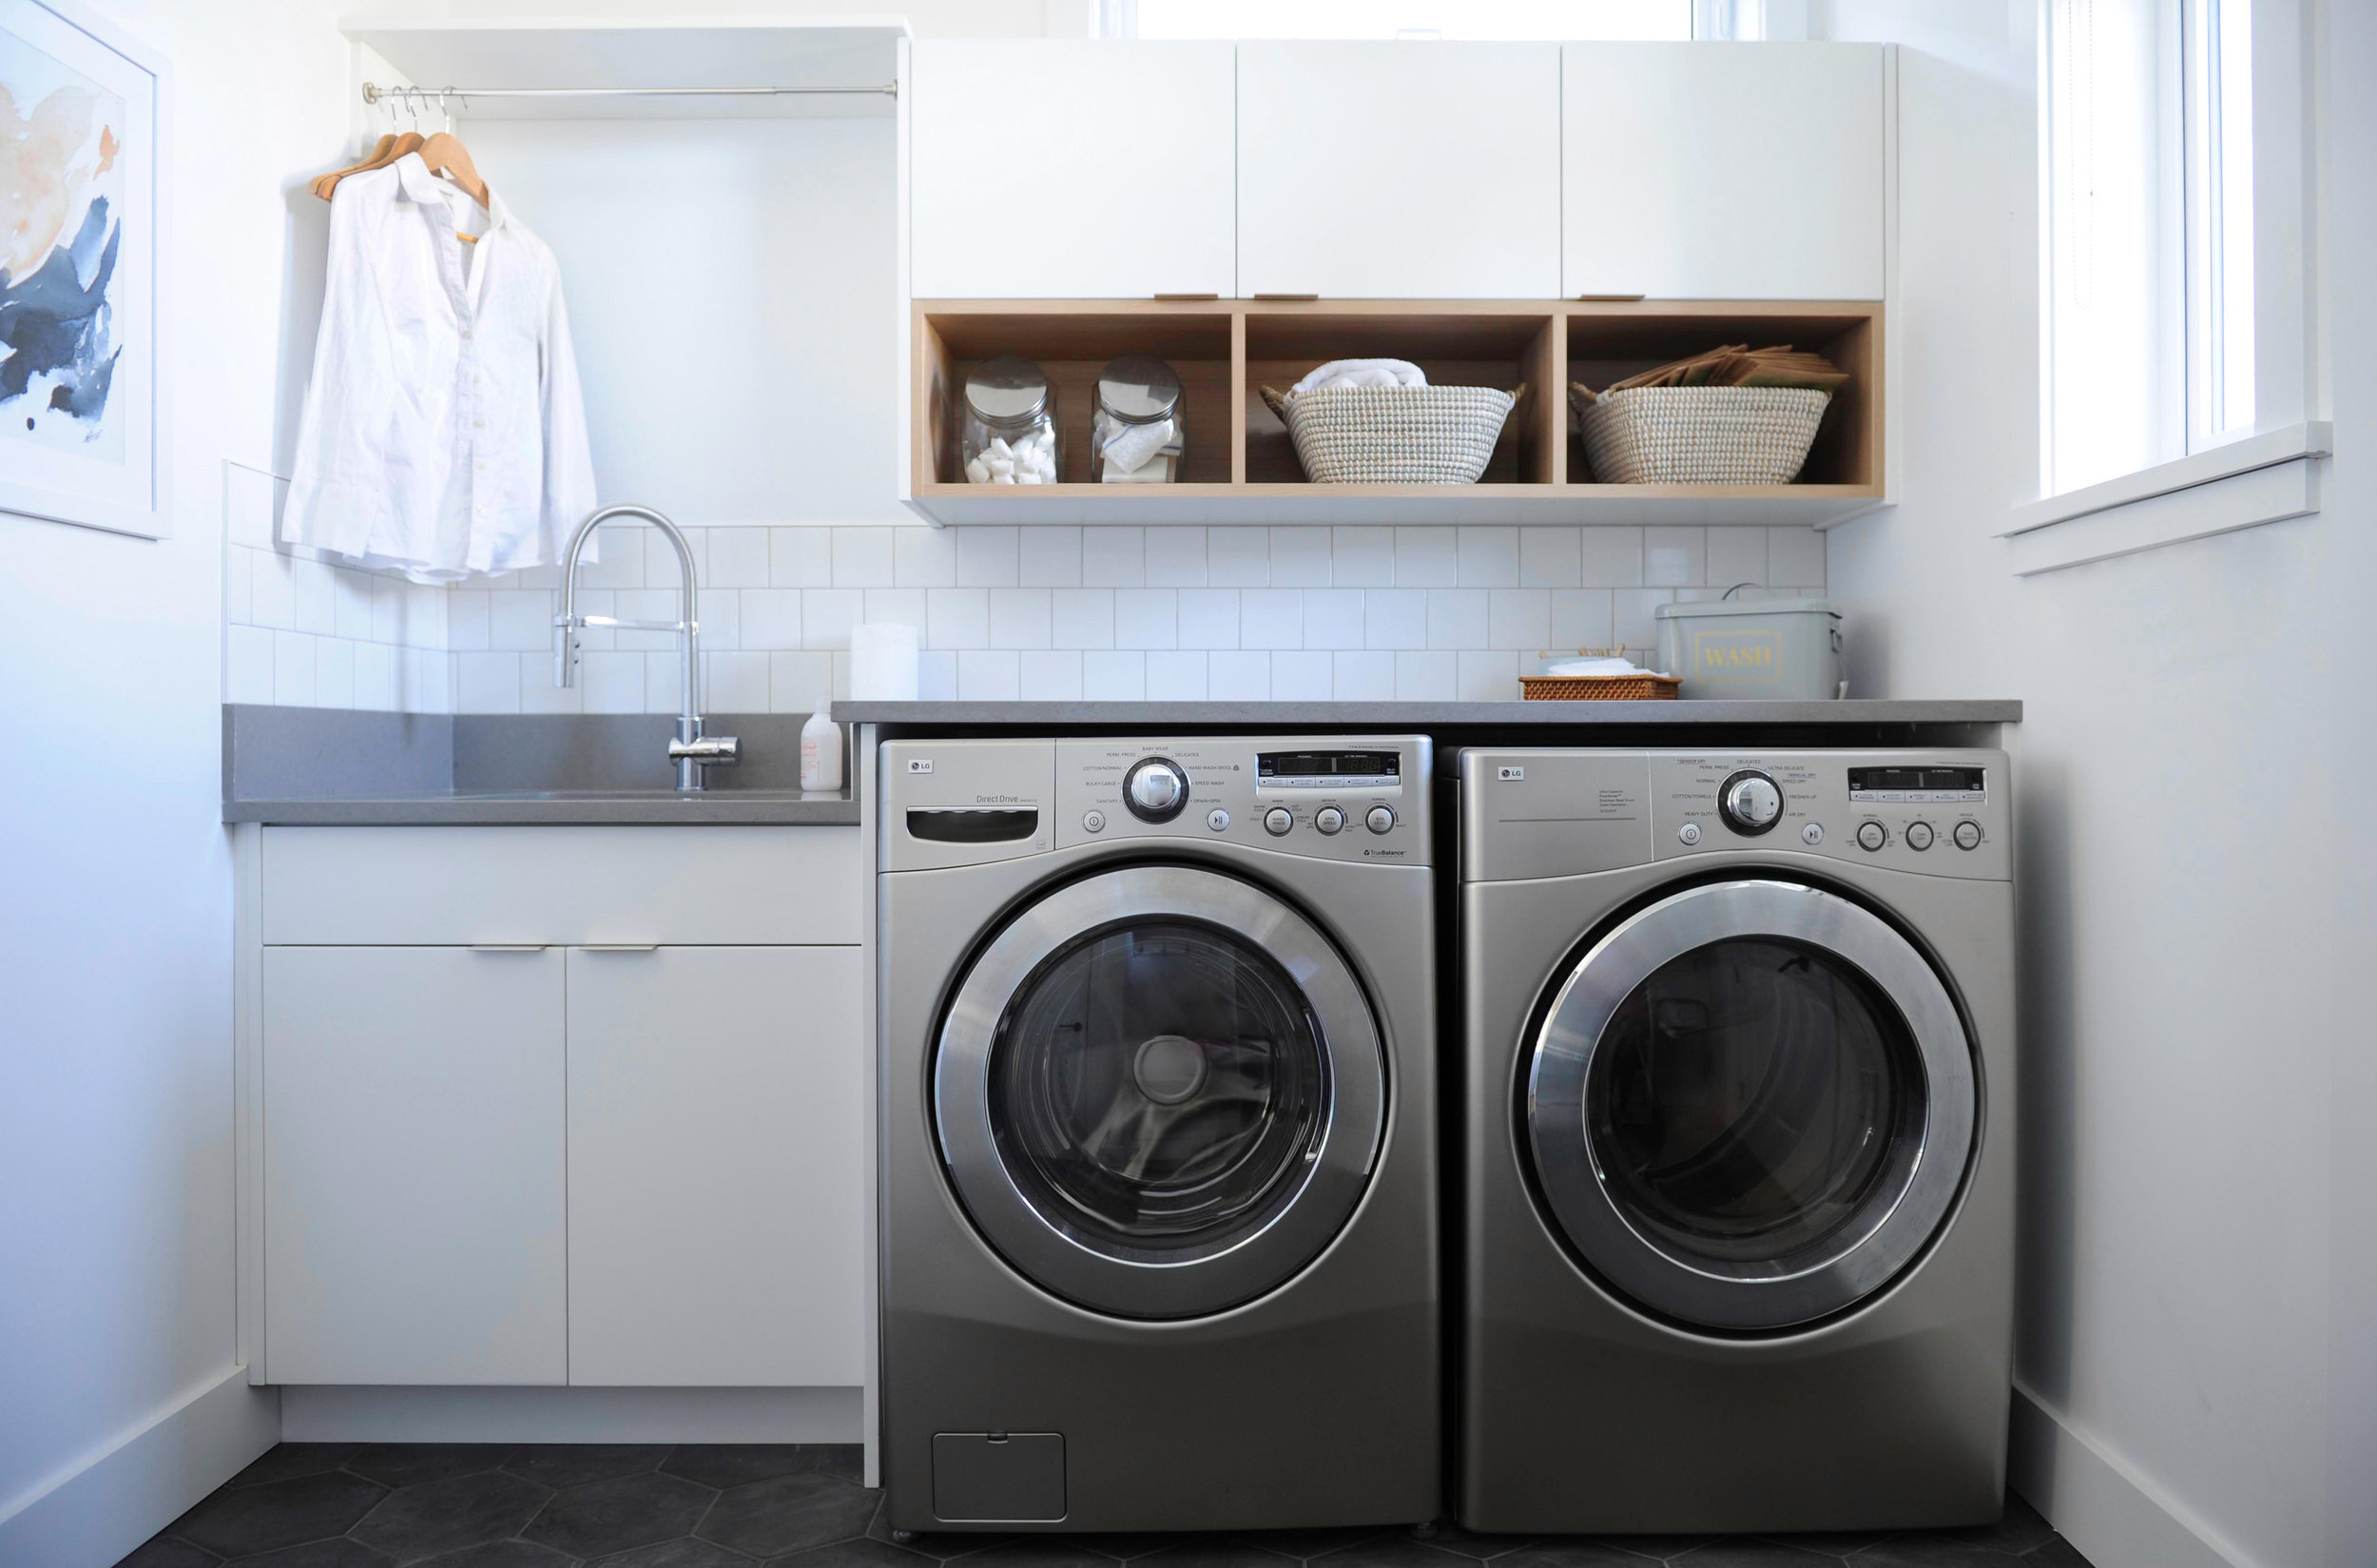 The laundry room, which contains a front loading washer and dryer, a sink and some shelving for baskets and soap.